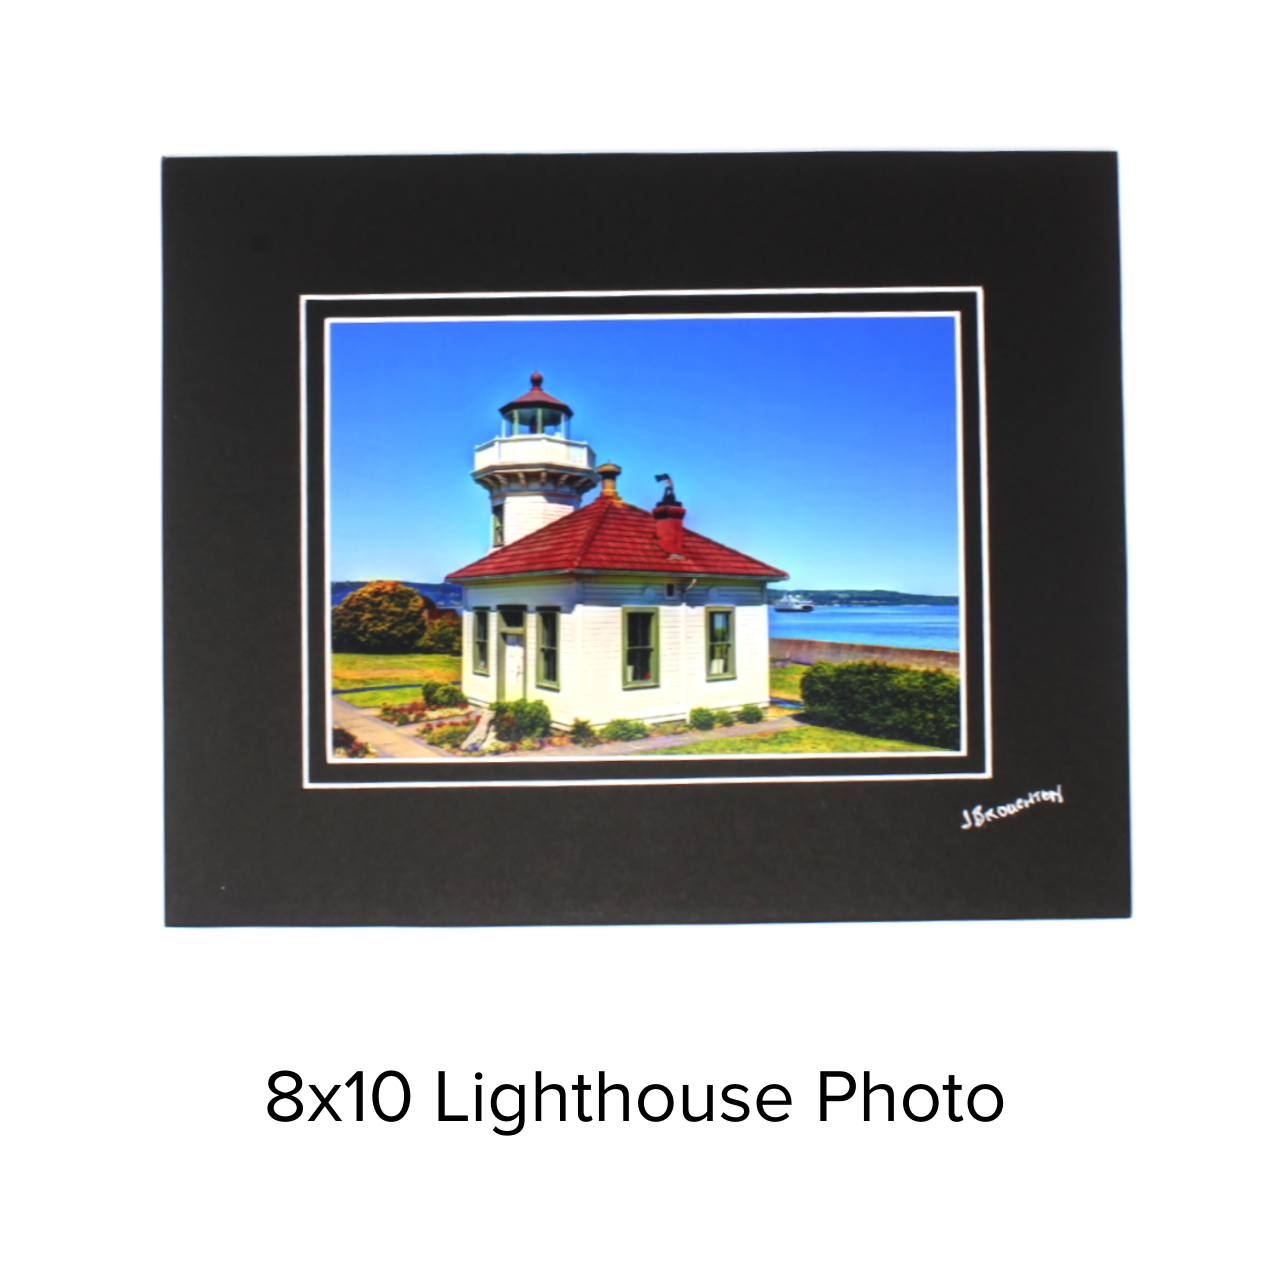 John Broughton Photo 8x10 Lighthouse